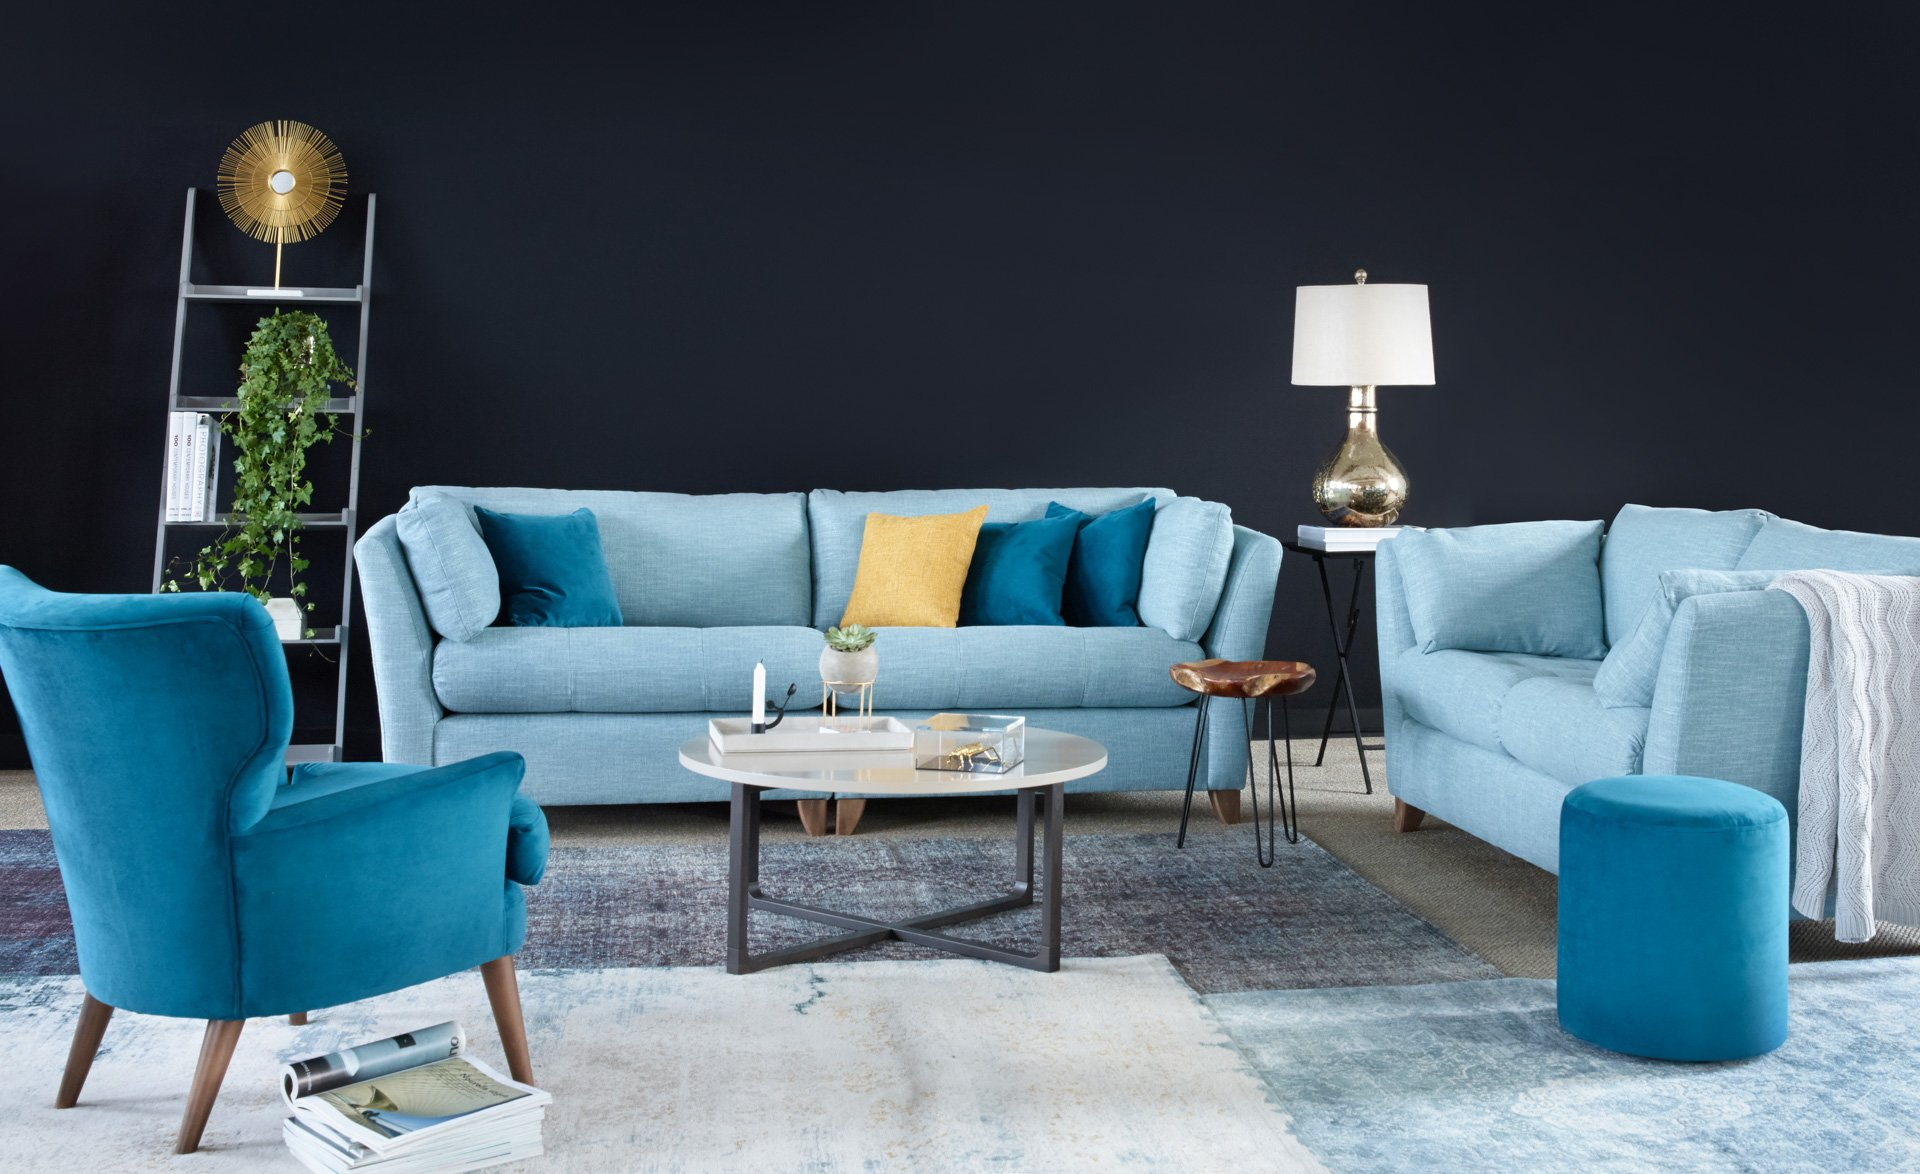 staged styled photography for sofa and furniture brands